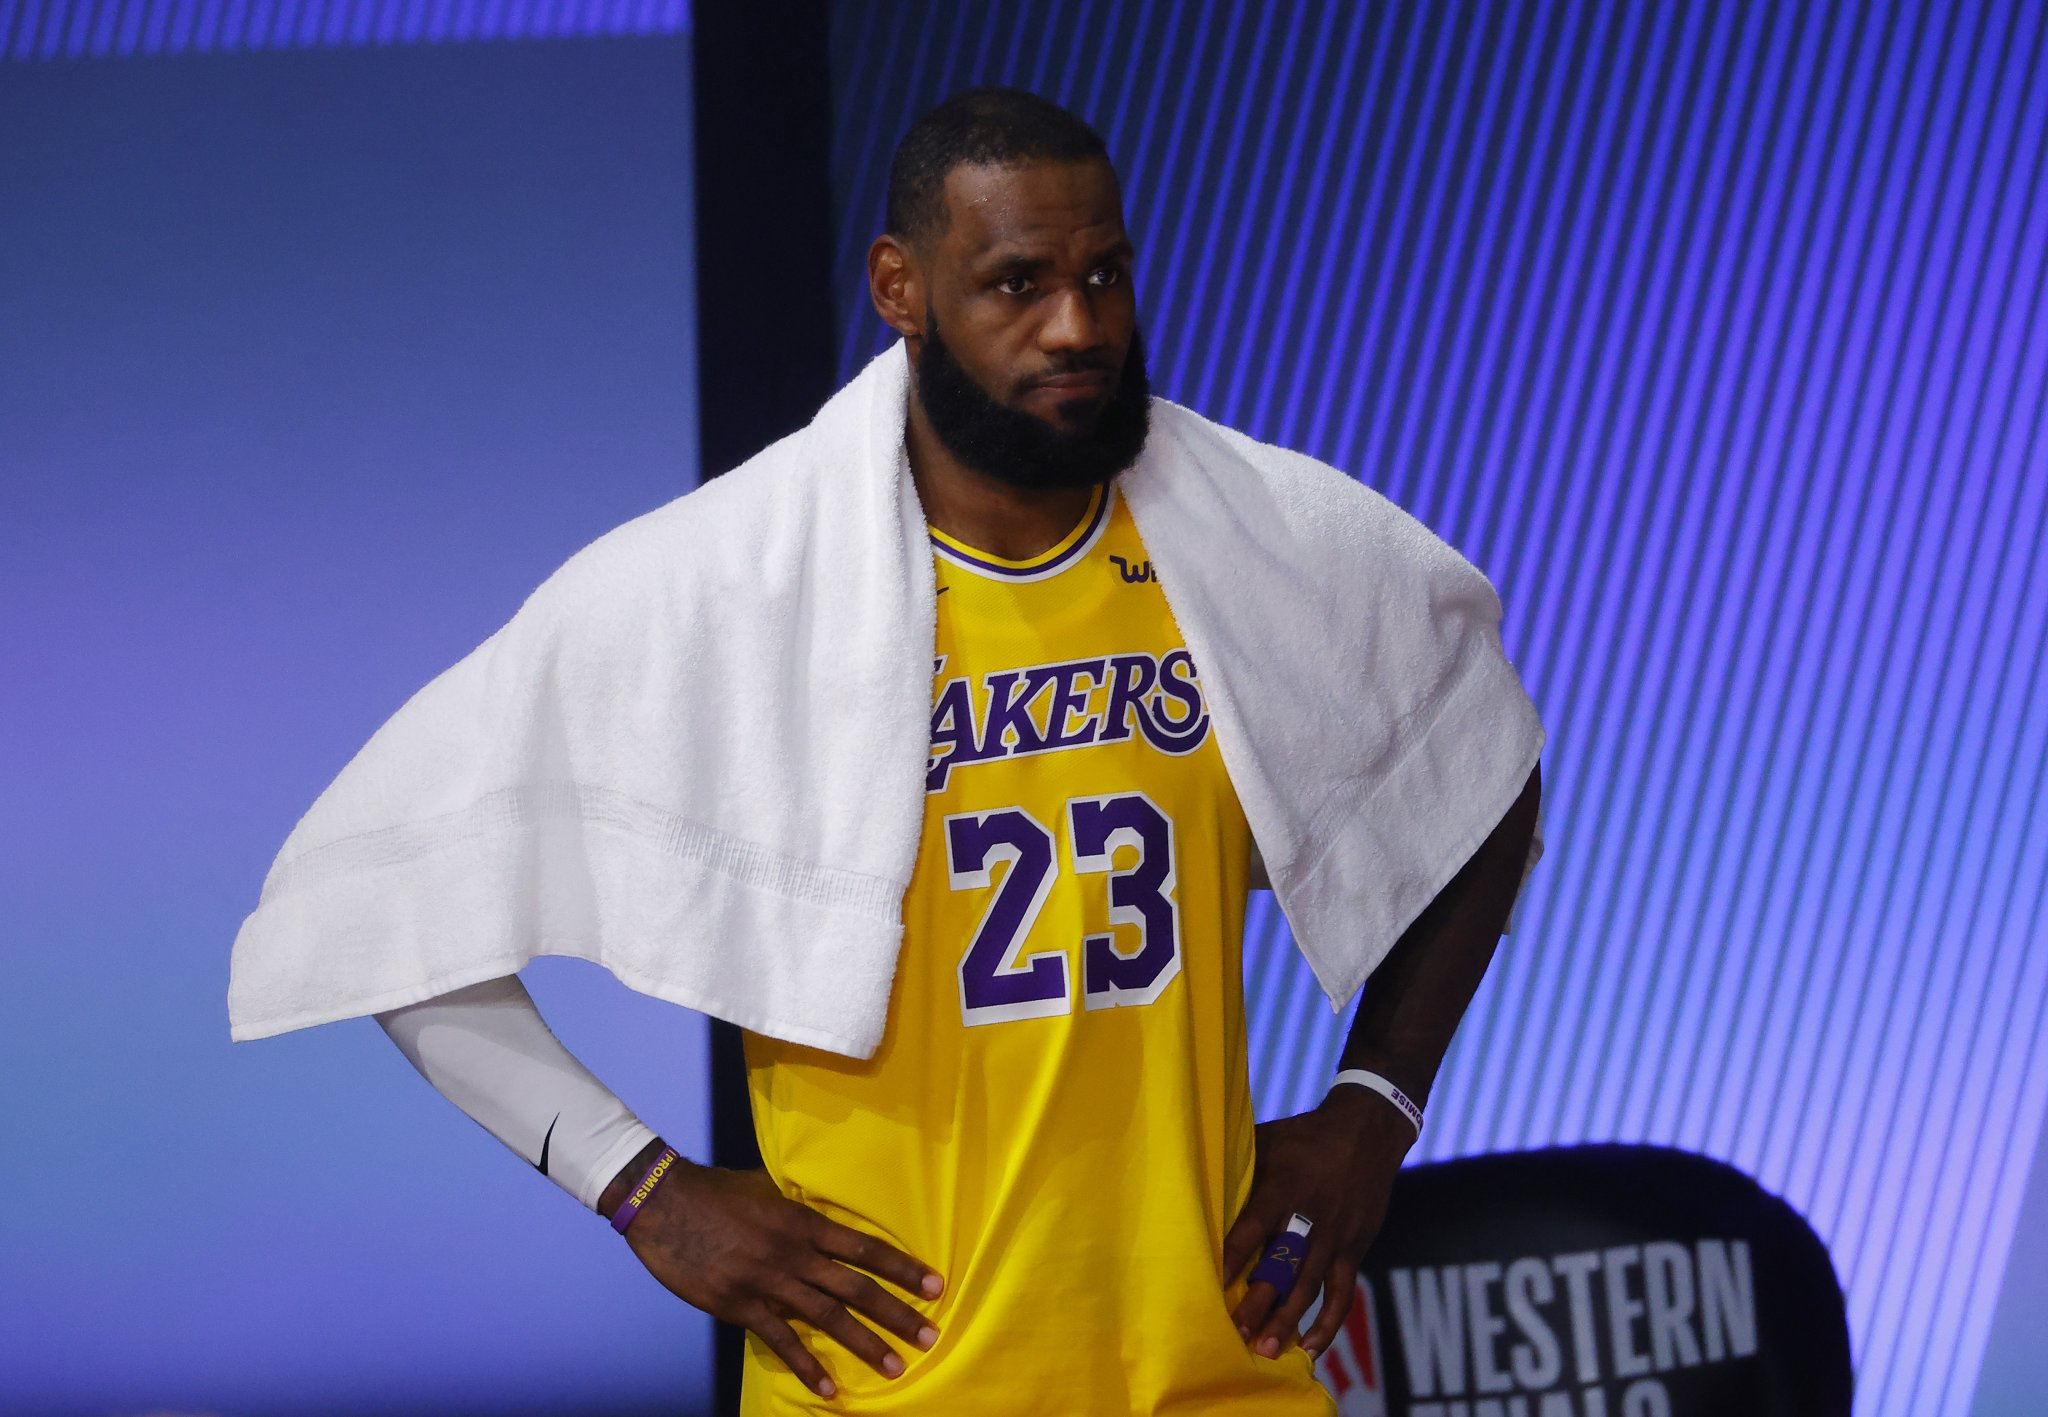 LeBron James Posts Cryptic Twitter Post And The Internet Believes He's Subtweeting His Son Bronny For Smoking In Video - BroBible